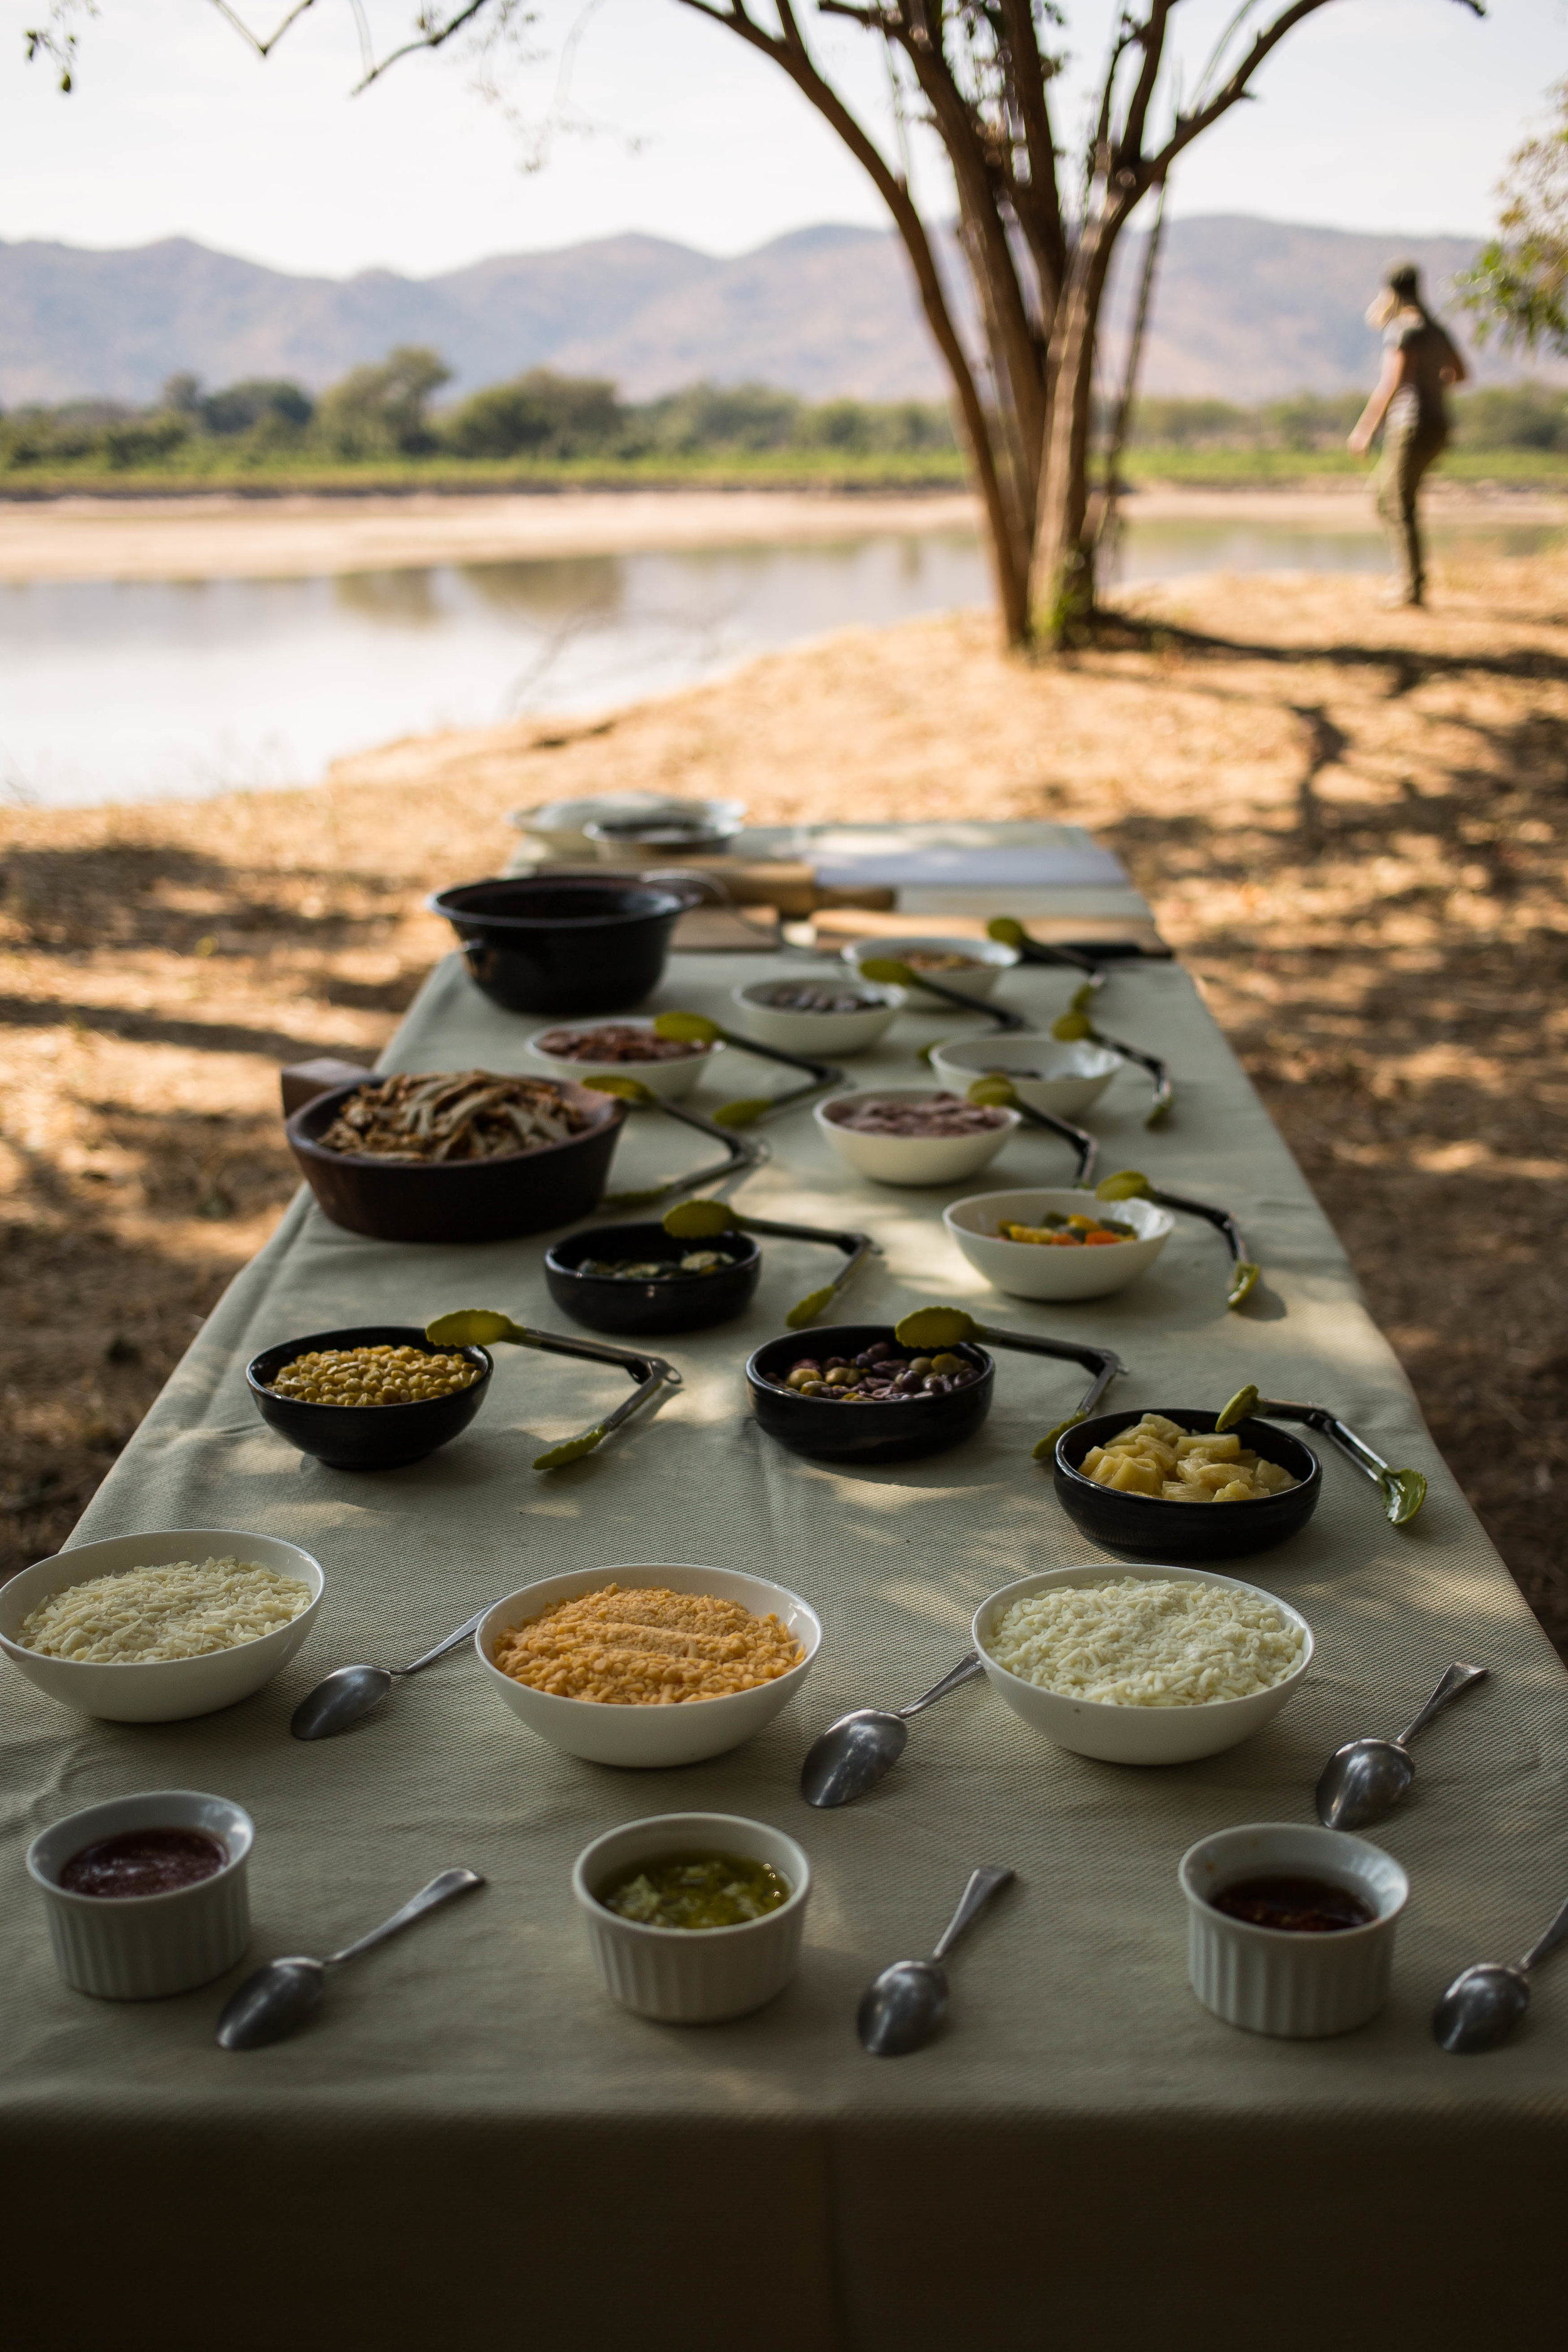 Mobile Pizza Making on the Banks of the Luangwe RIver